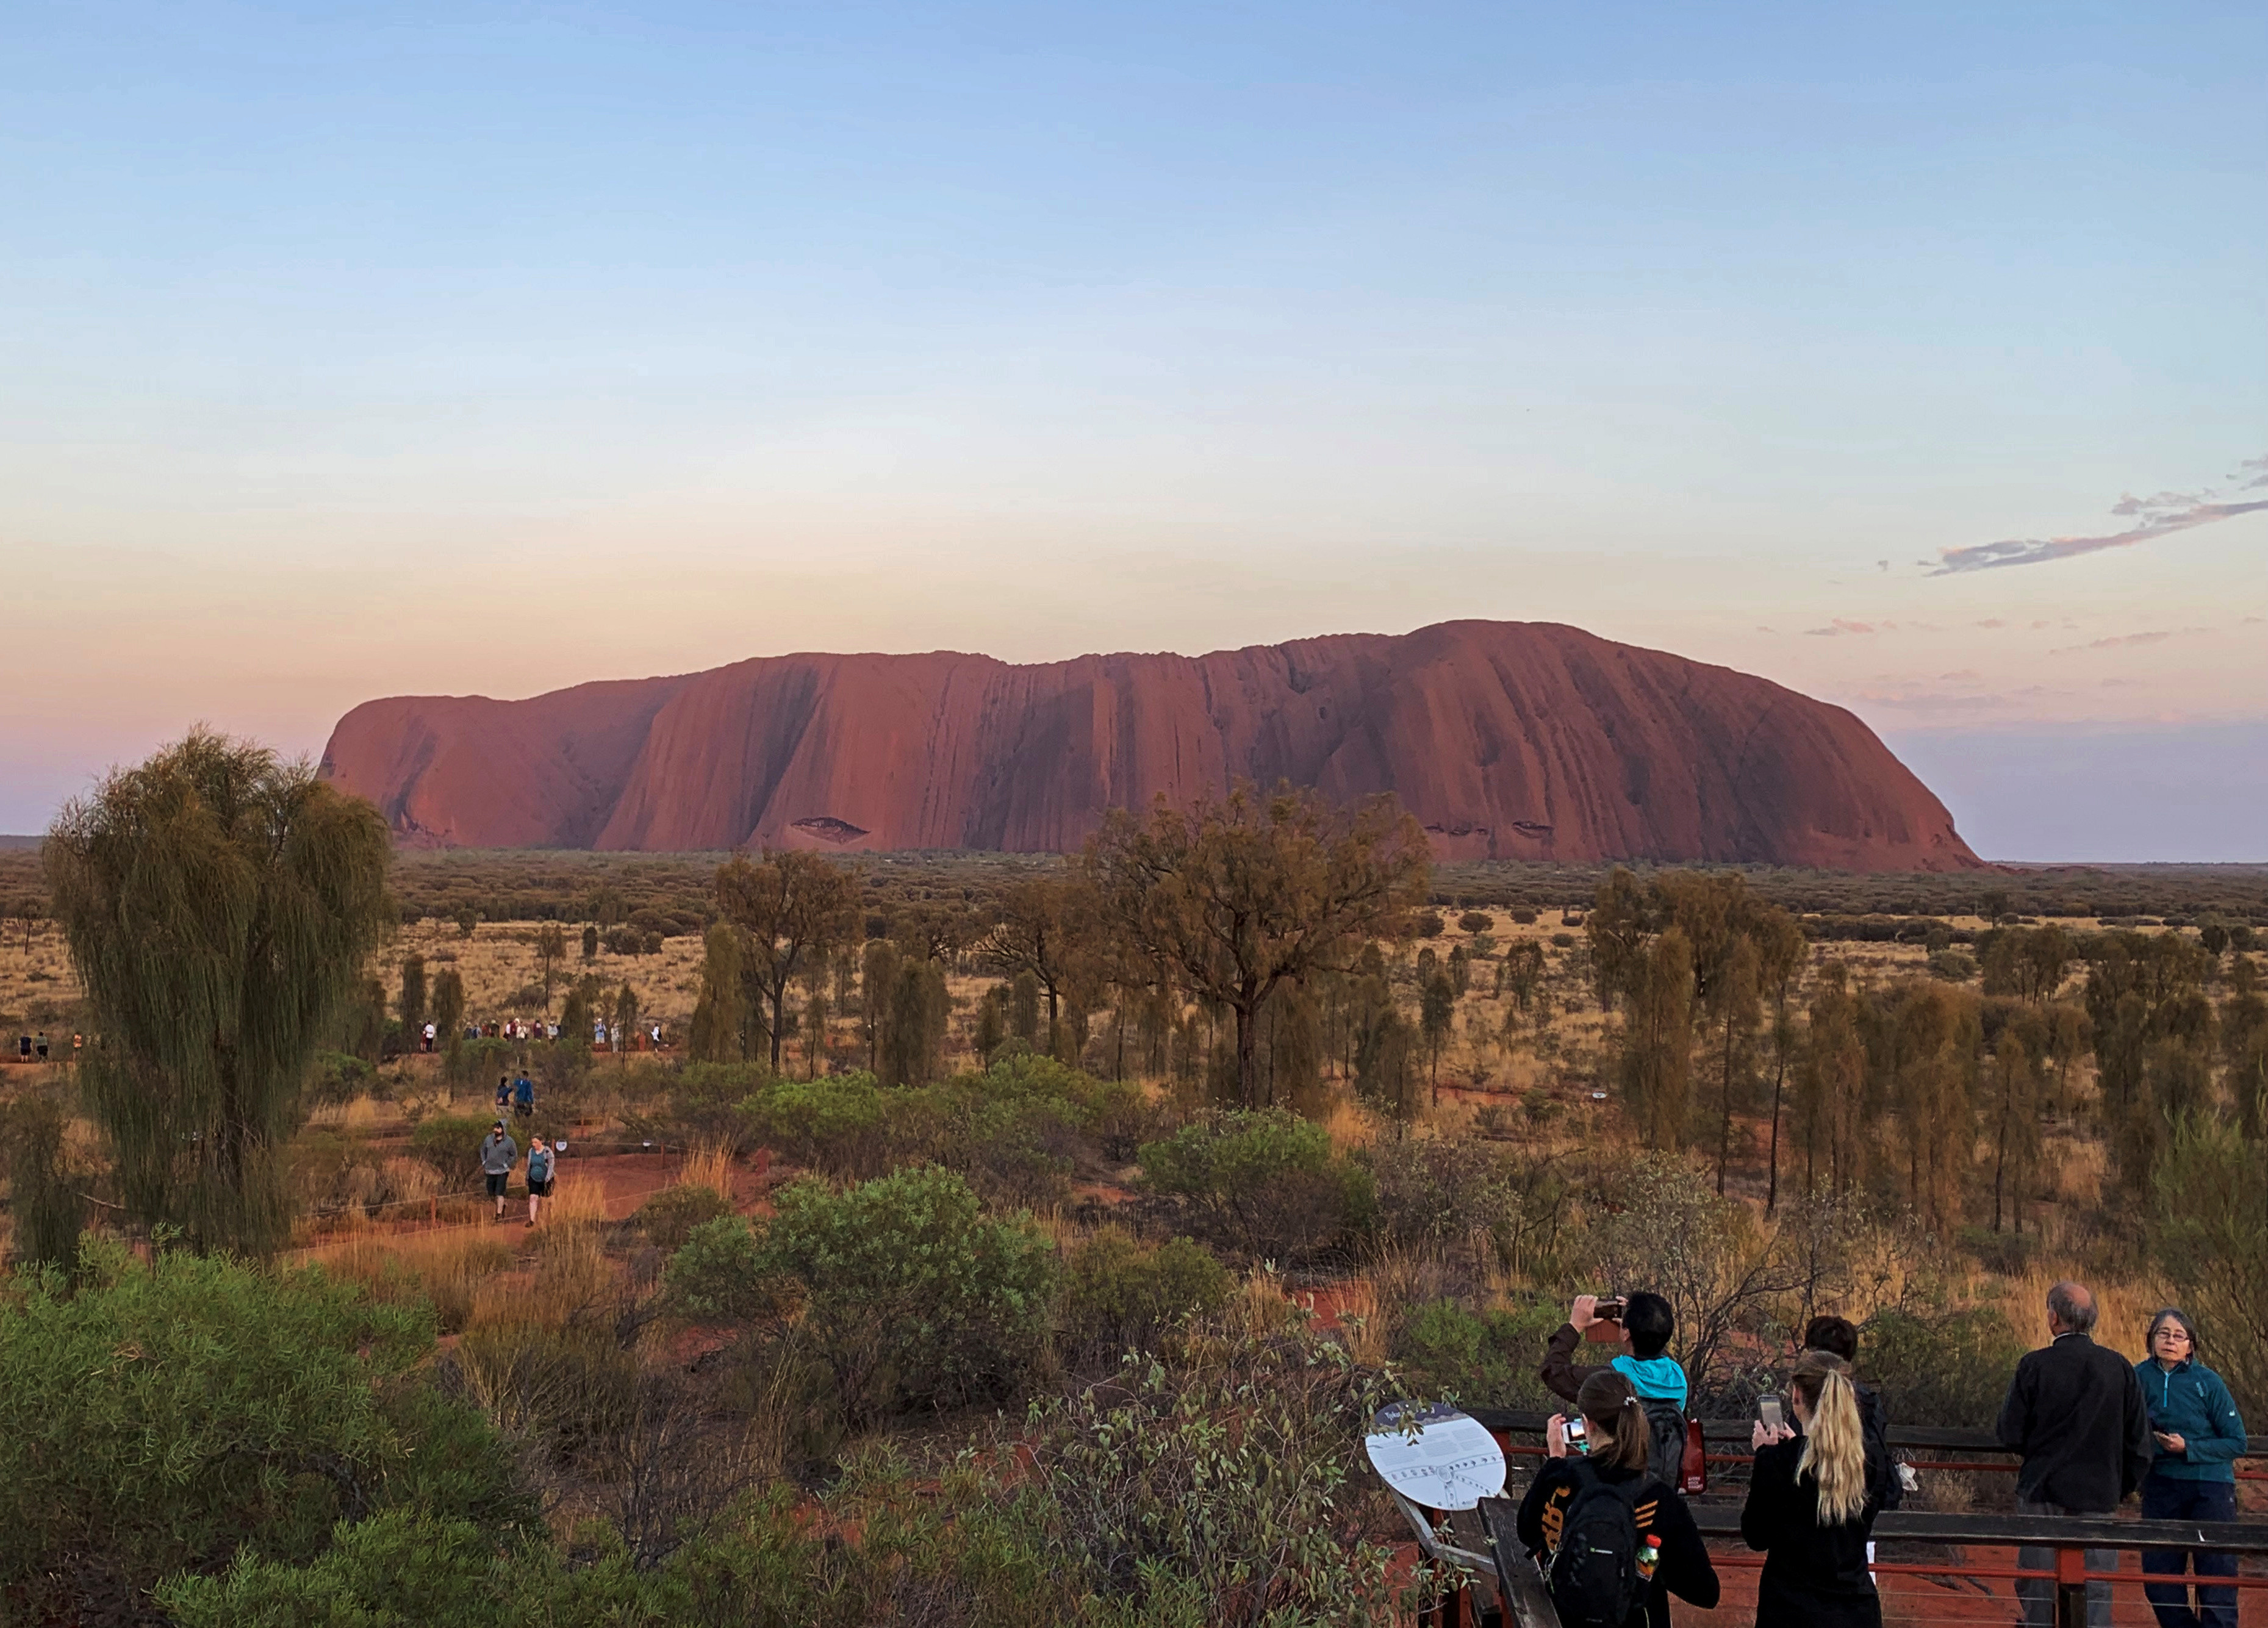 People view Uluru, formerly known as Ayers Rock, the day before a permanent ban on climbing the monolith takes effect following a decades-long fight by indigenous people to close the trek, near Yulara, Australia, October 25, 2019.